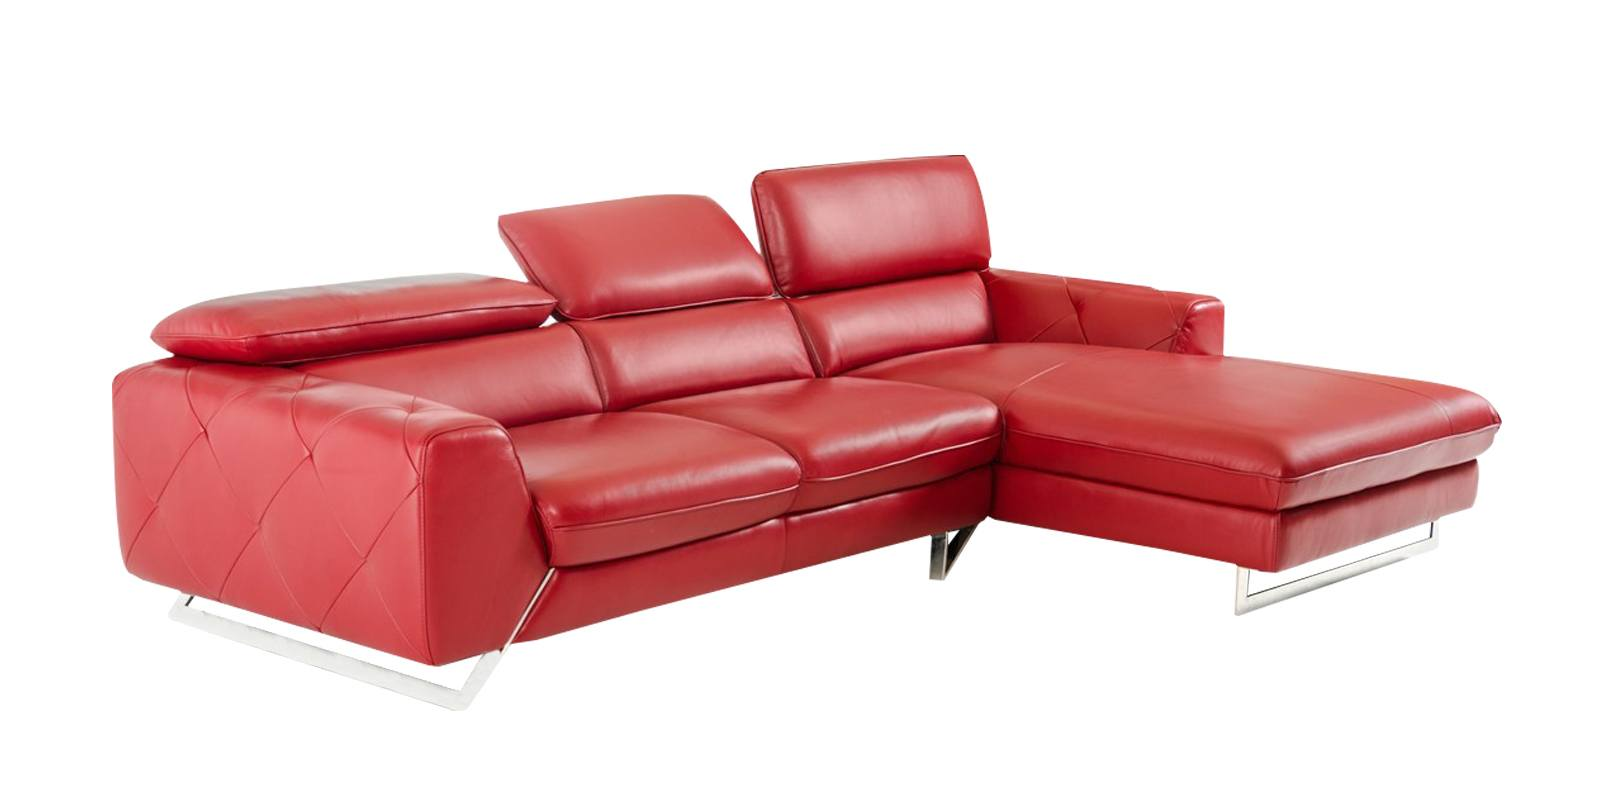 ultra modern red passion love seat   Ultra Modern LHS Two Seater Sofa With Lounger In Red ...